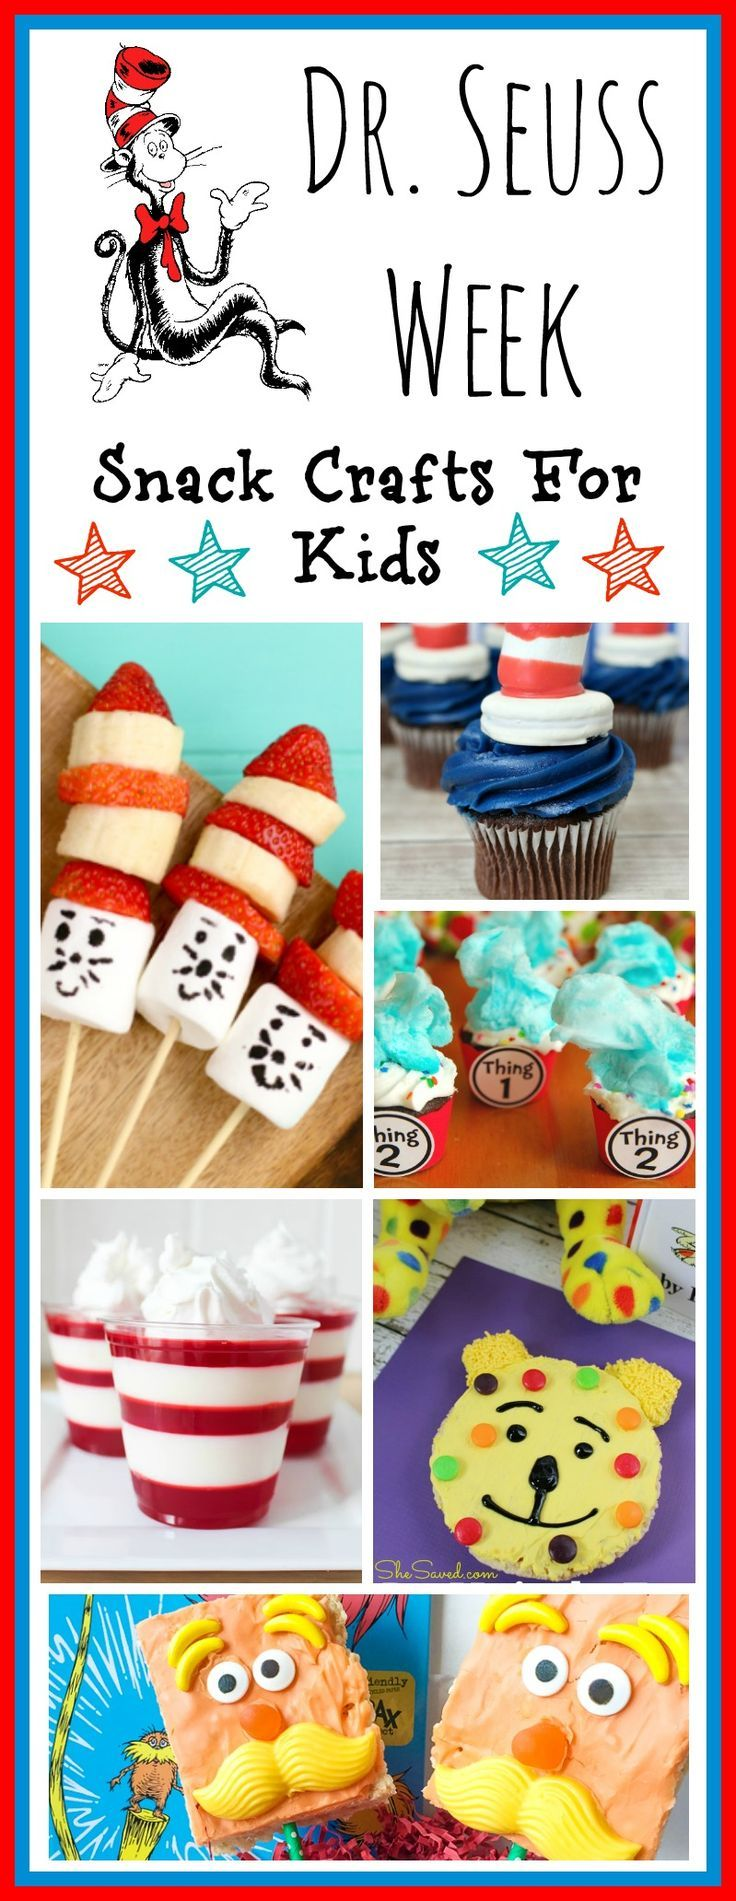 Dr. Seuss Snack Crafts for Kids - a great way to kick off Read Across America week! These snacks are inspired by our favorite stories written by our beloved Dr. Seuss!